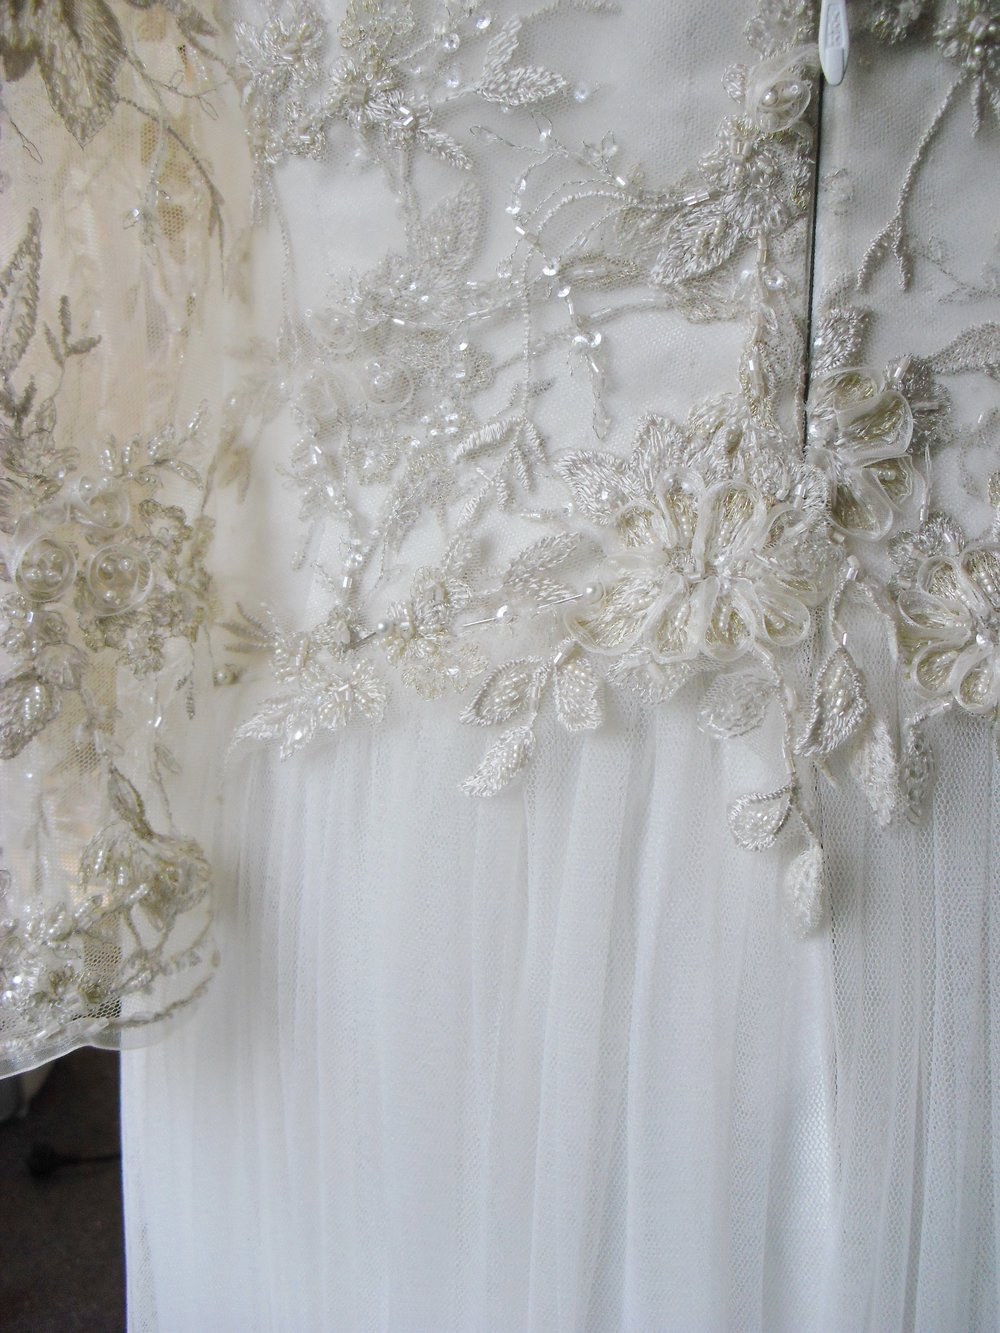 v - silk satin crepe, beaded lace - Chistchurch bride - studio shot